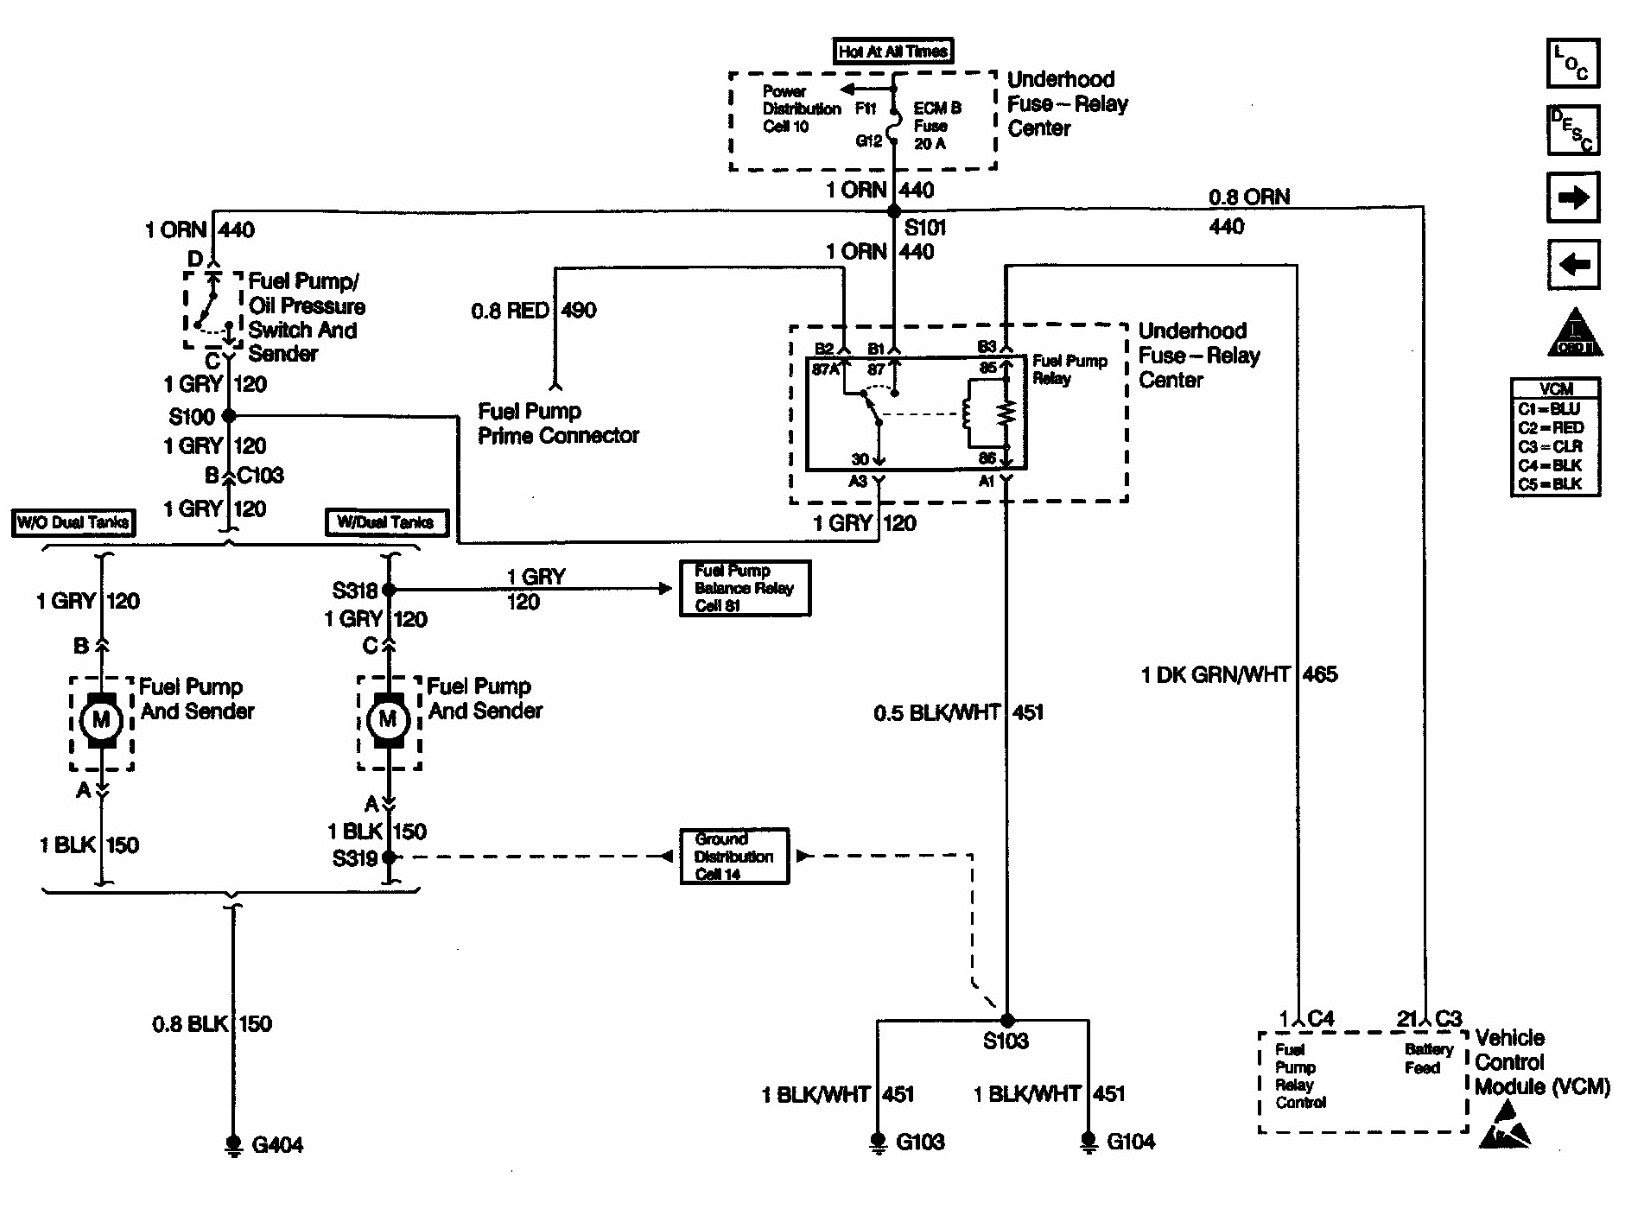 Diagram Wiring Diagram Gm Fuel Pump Full Version Hd Quality Fuel Pump Diagramshart Tomari It